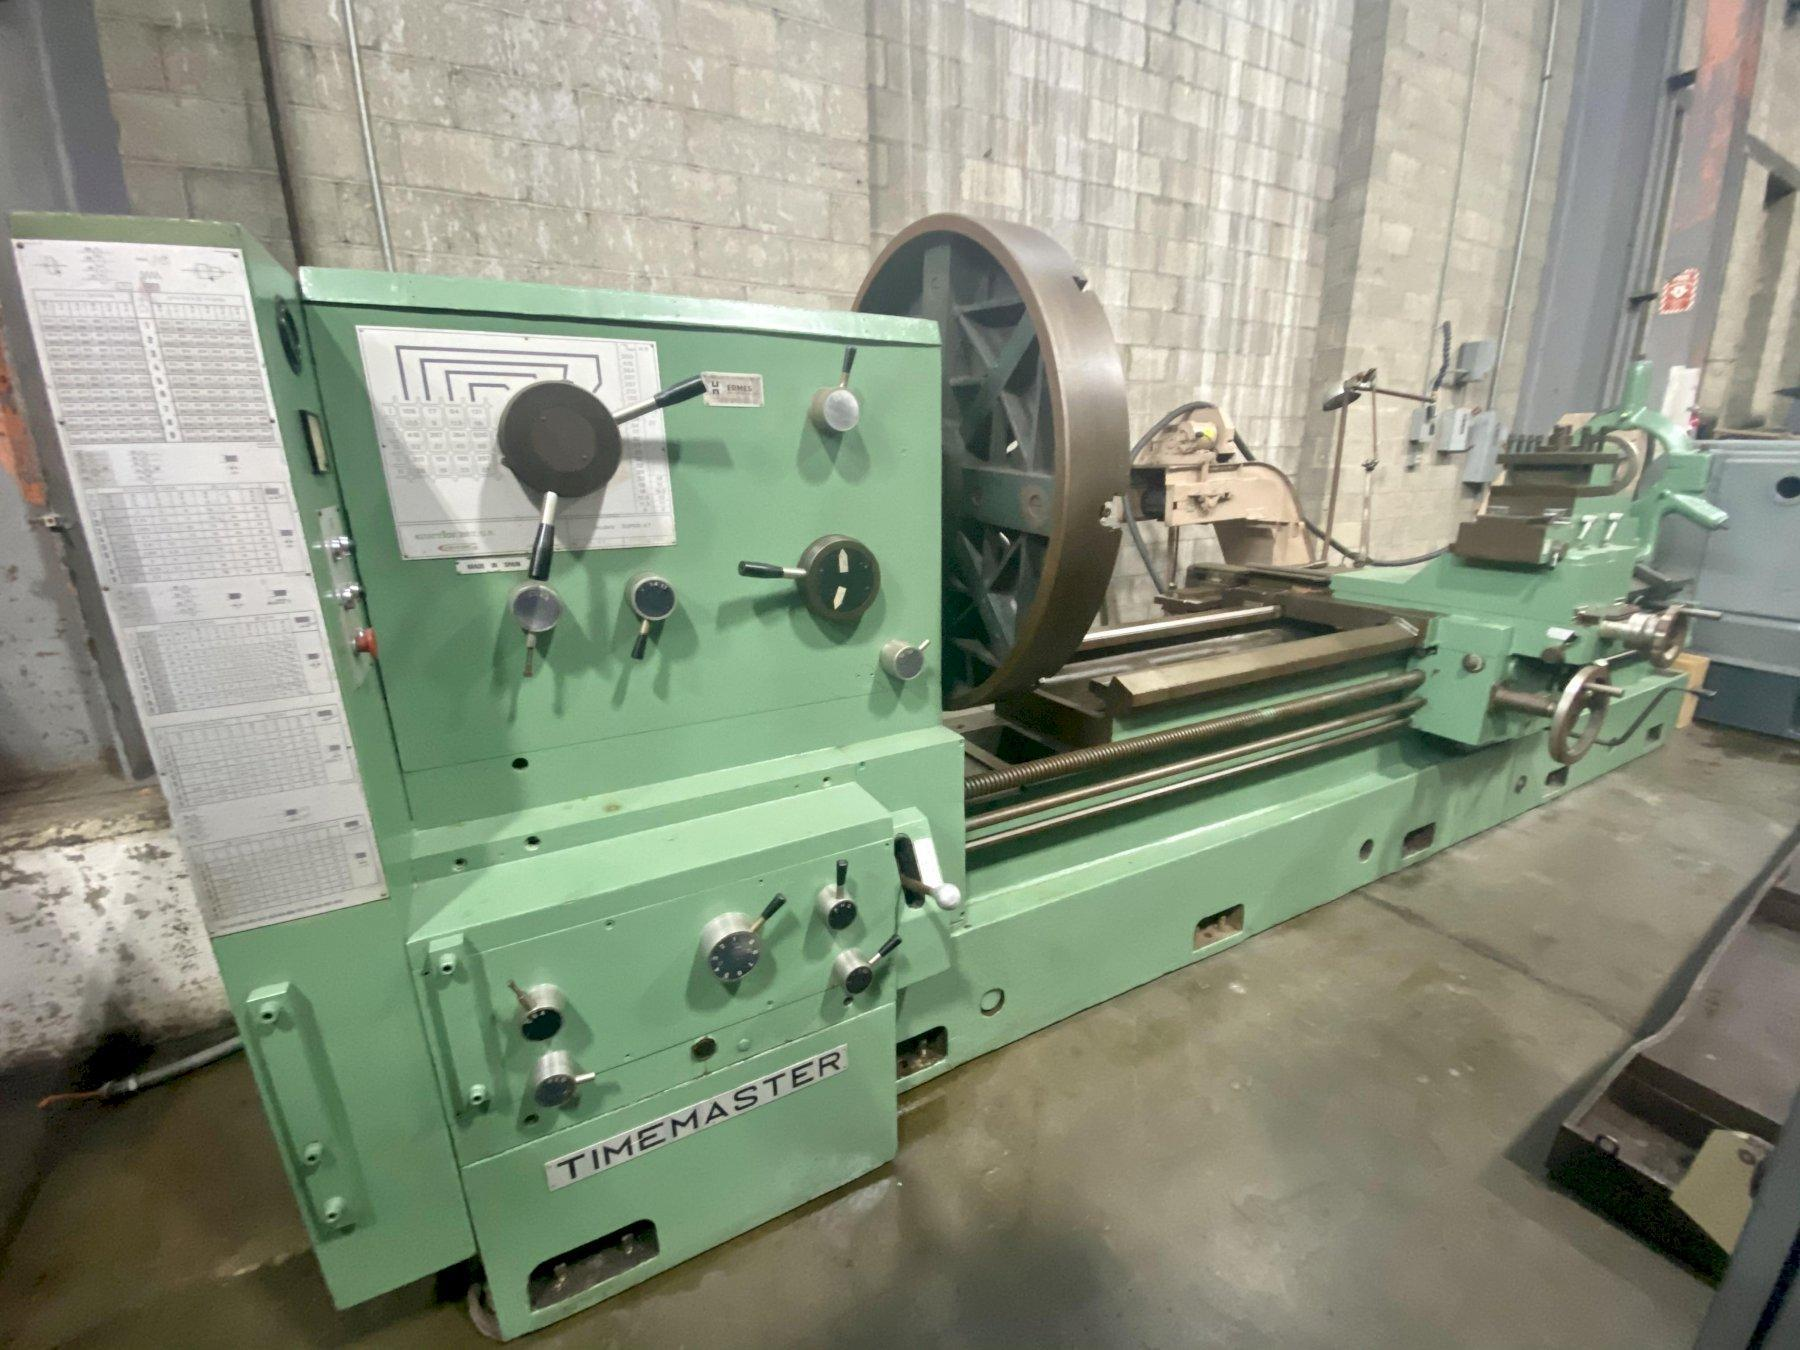 """40""""/56"""" x 120"""" TIMEMASTER GURUTZPE, Model Super AT, 44"""" 4-Jaw Chuck, 40"""" Swing Over the Bed, 56"""" Swing in the Gap, 28"""" Swing Over the Cross Slide, 120"""" Centers, Inch/Metric Threading, Taper Attachment, New 1982."""